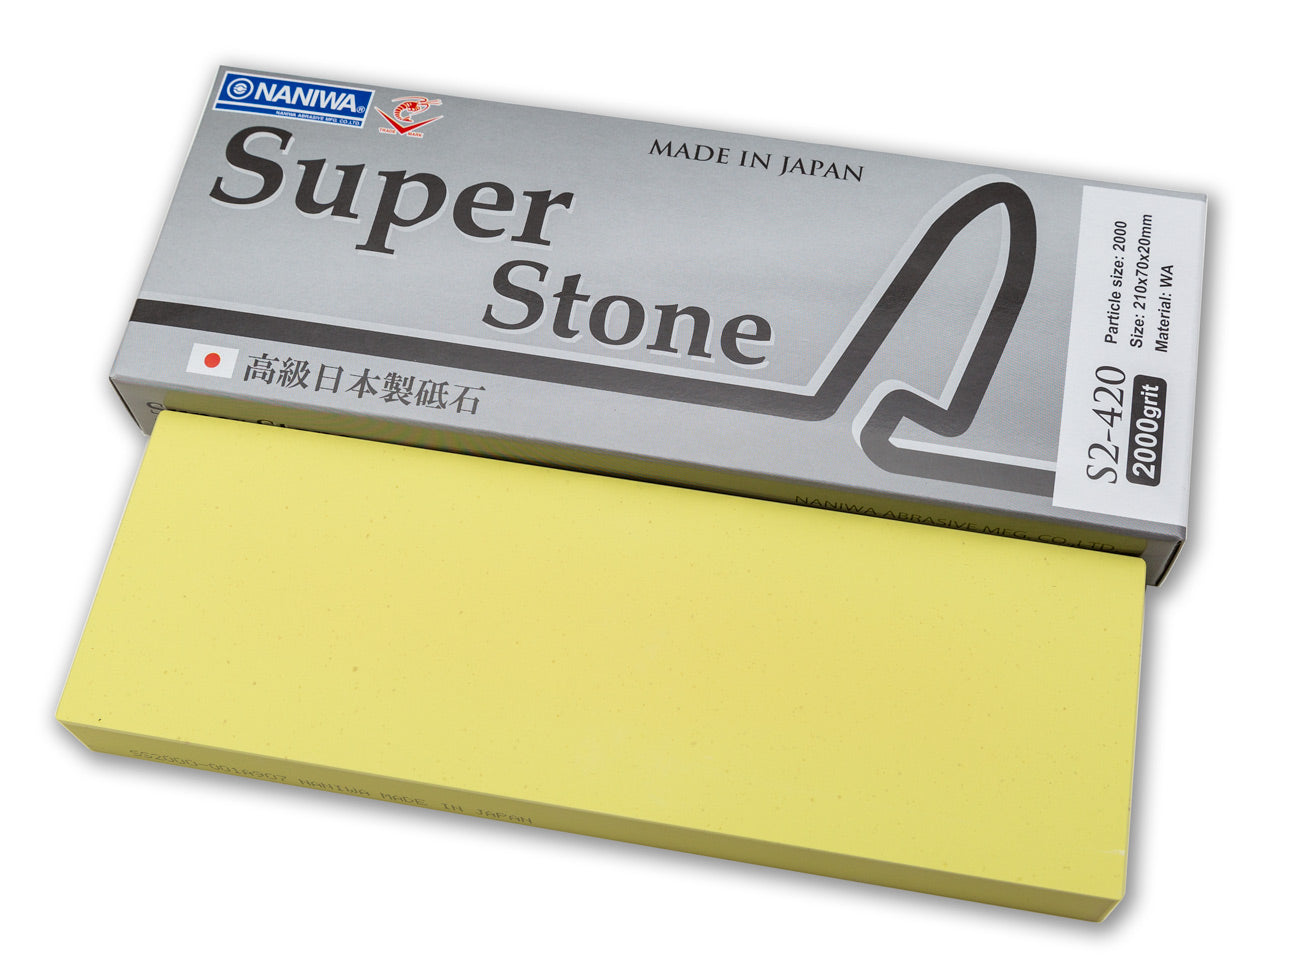 Naniwa Super-Stone Japanese Whetstone Sharpening Stone, 2000 grit